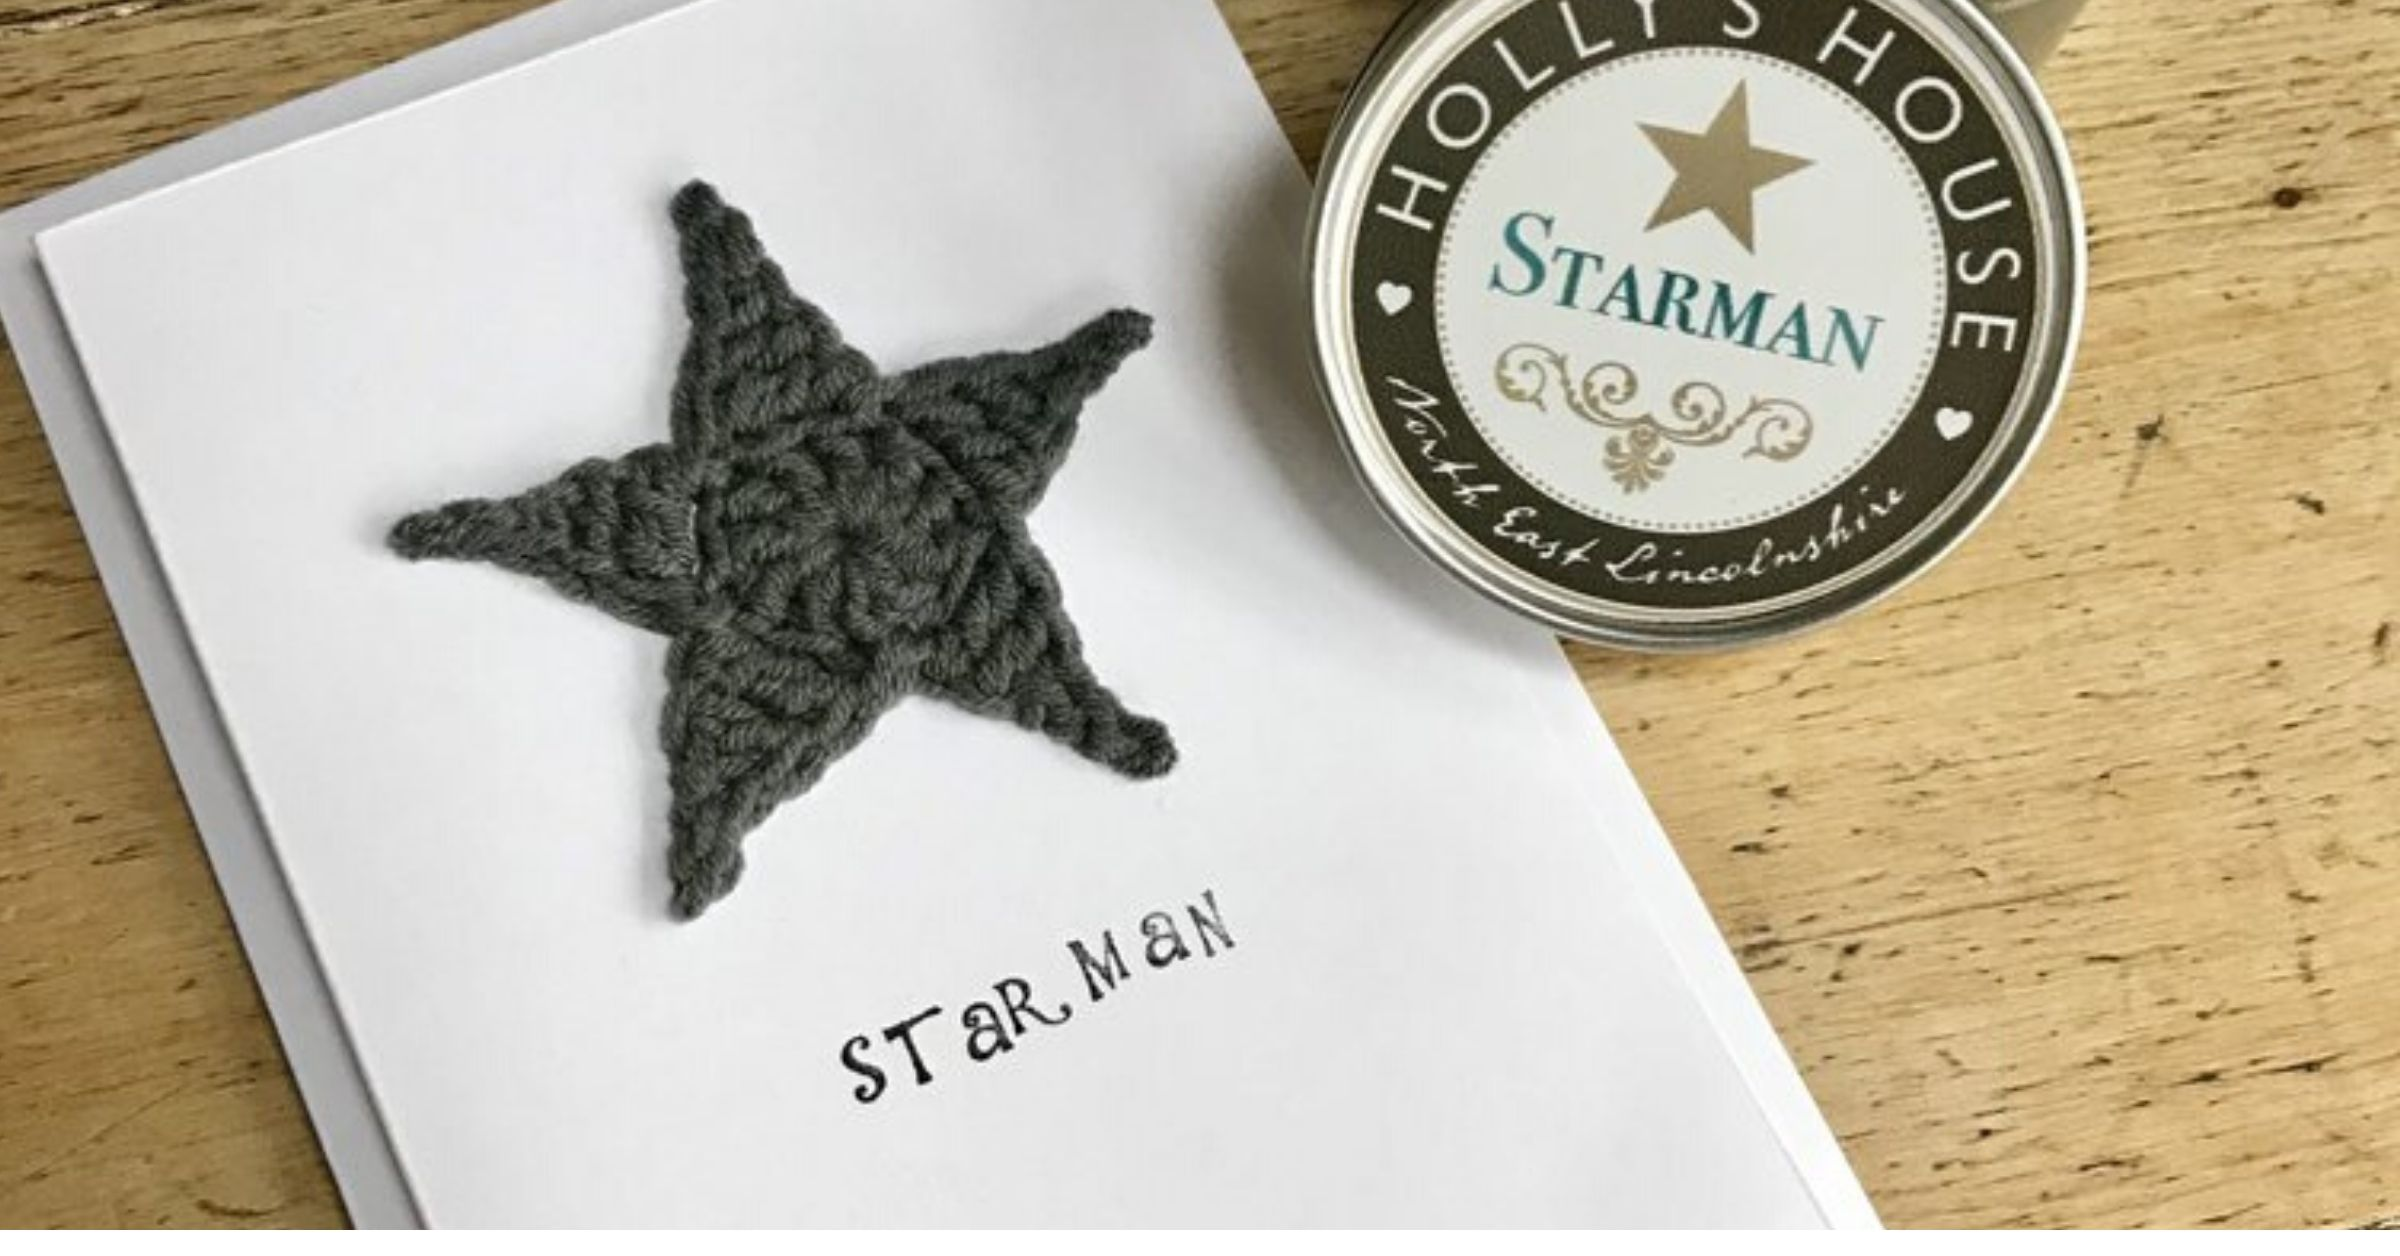 Crochet cards for Holly's House - Starman